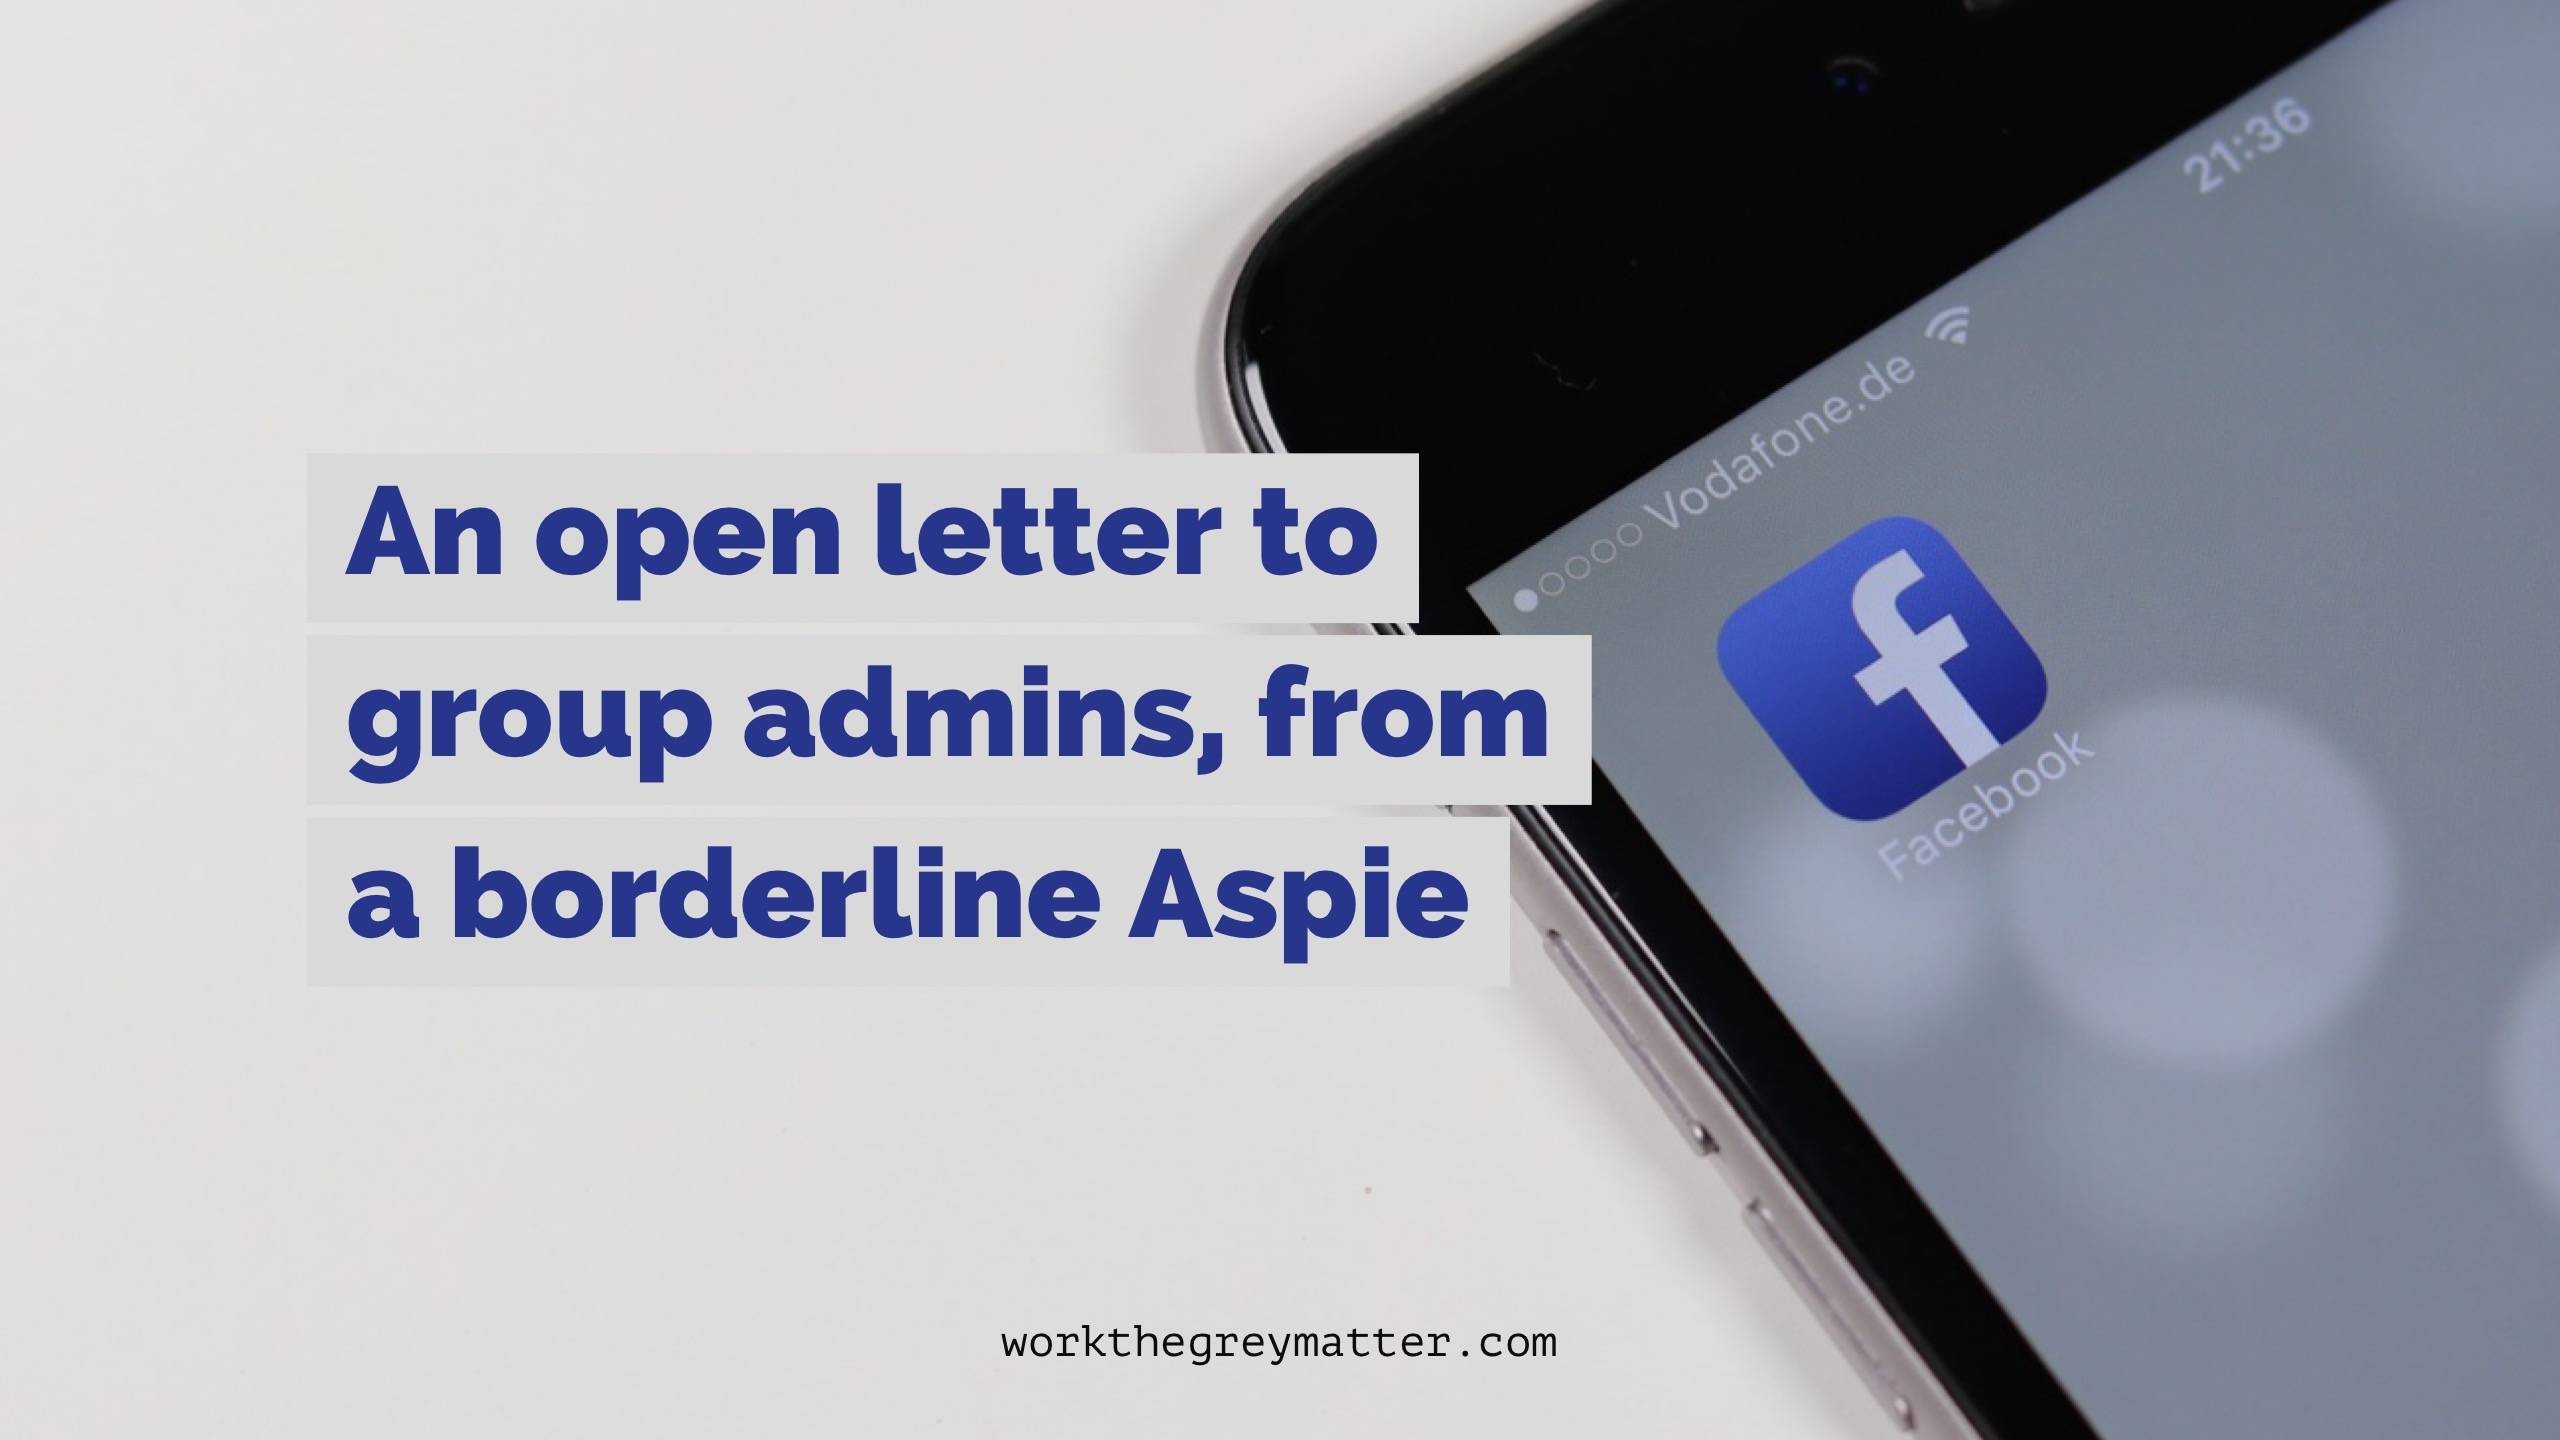 Mobile with Facebook app and title: An open letter to group admins, from a borderline Aspie